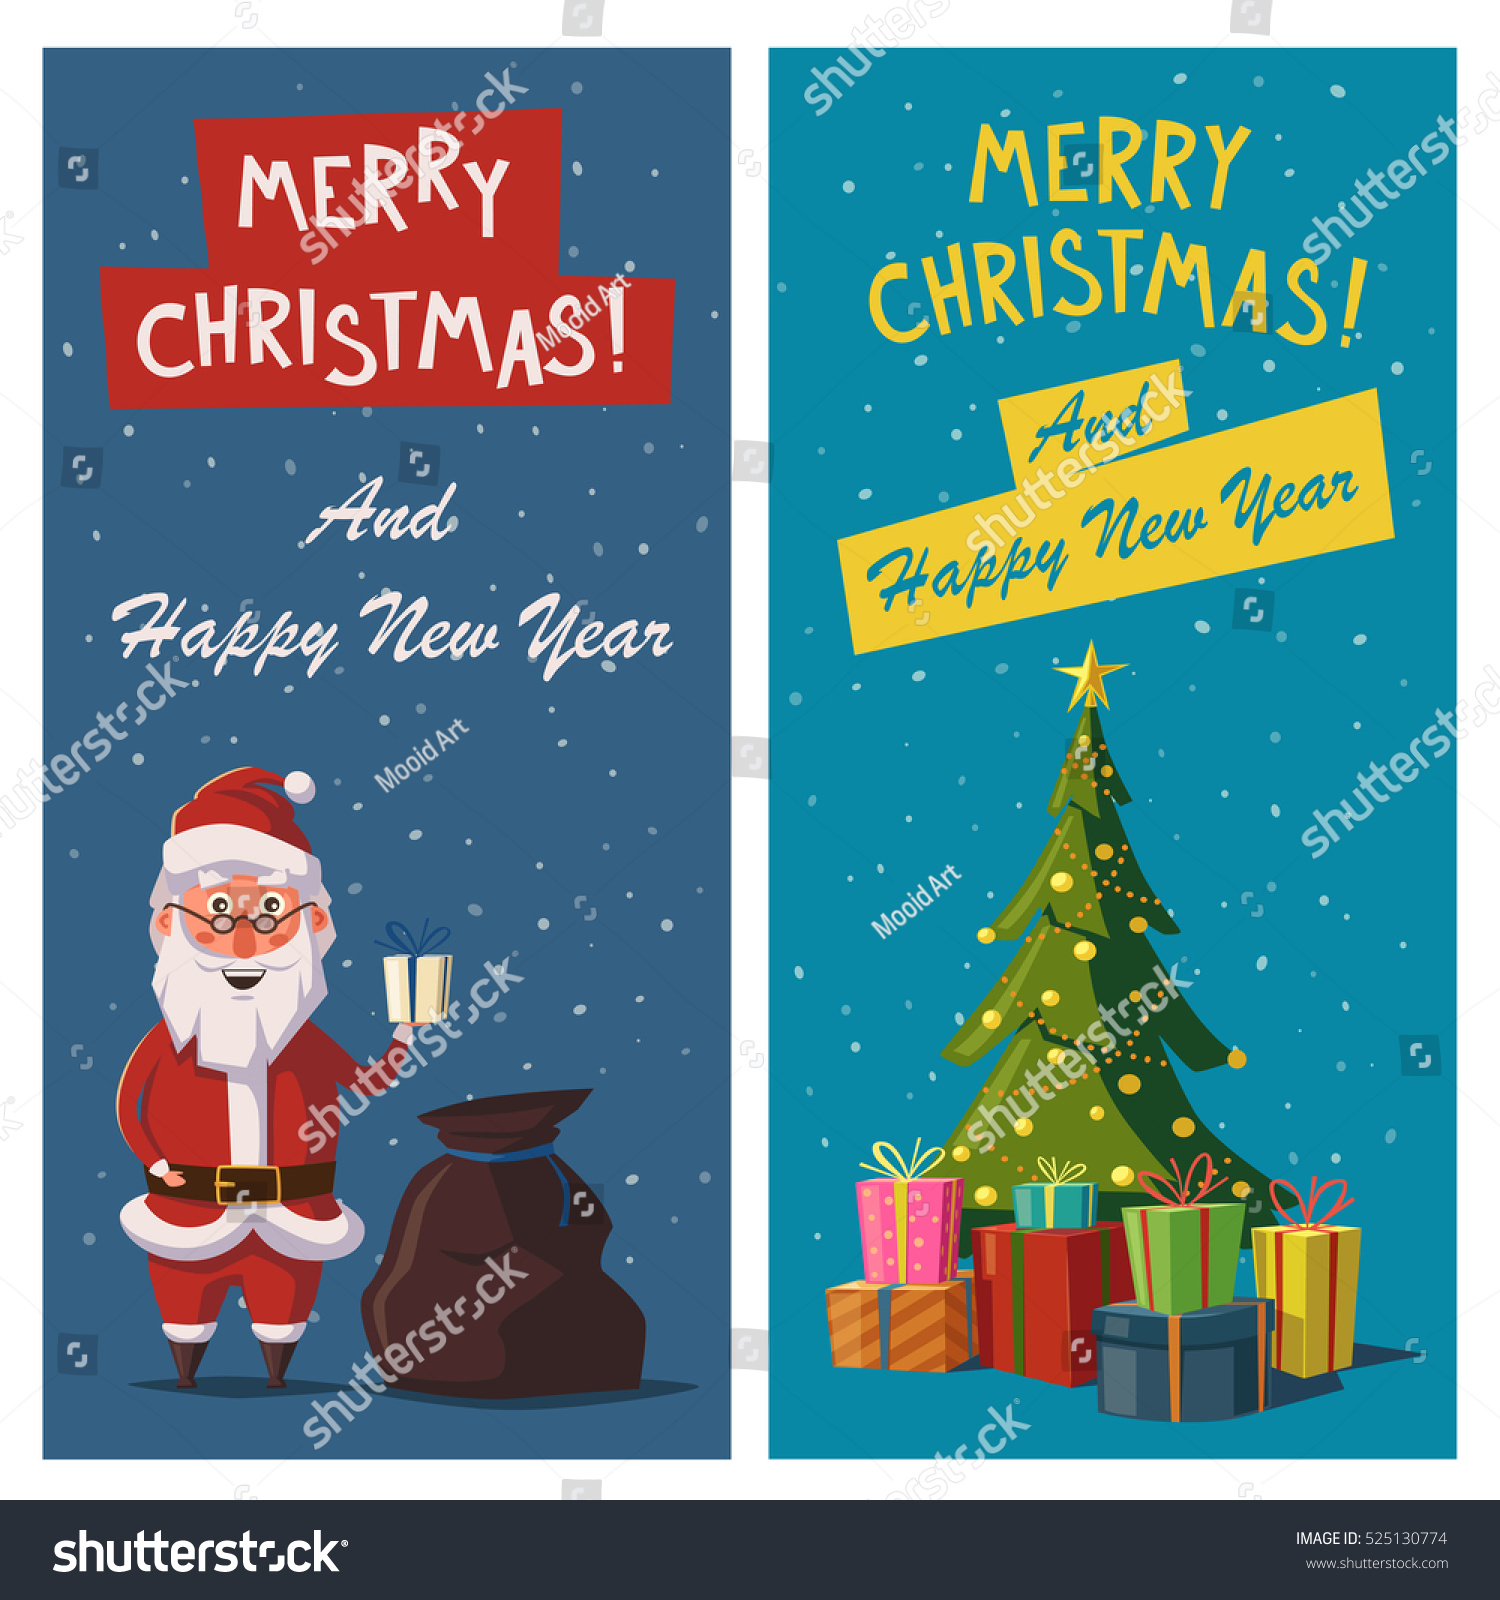 Merry Christmas Happy New Year Banners Stock Vector Royalty Free